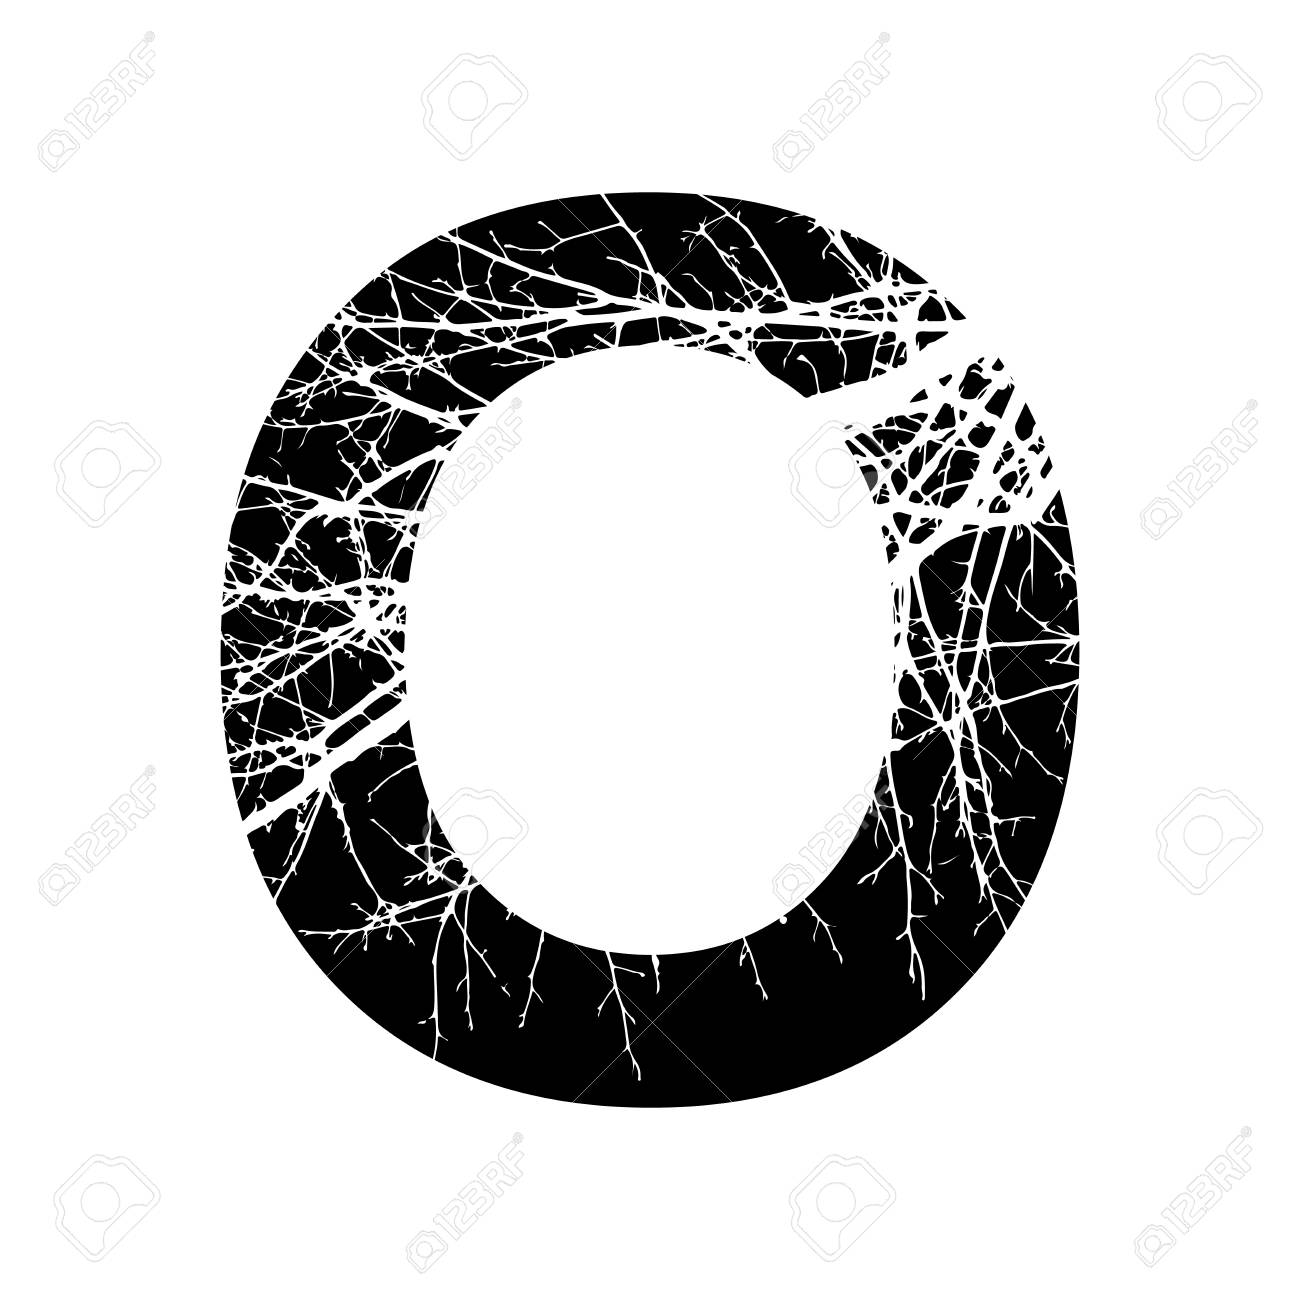 Letter O Double Exposure With White Tree On Black Background Vector